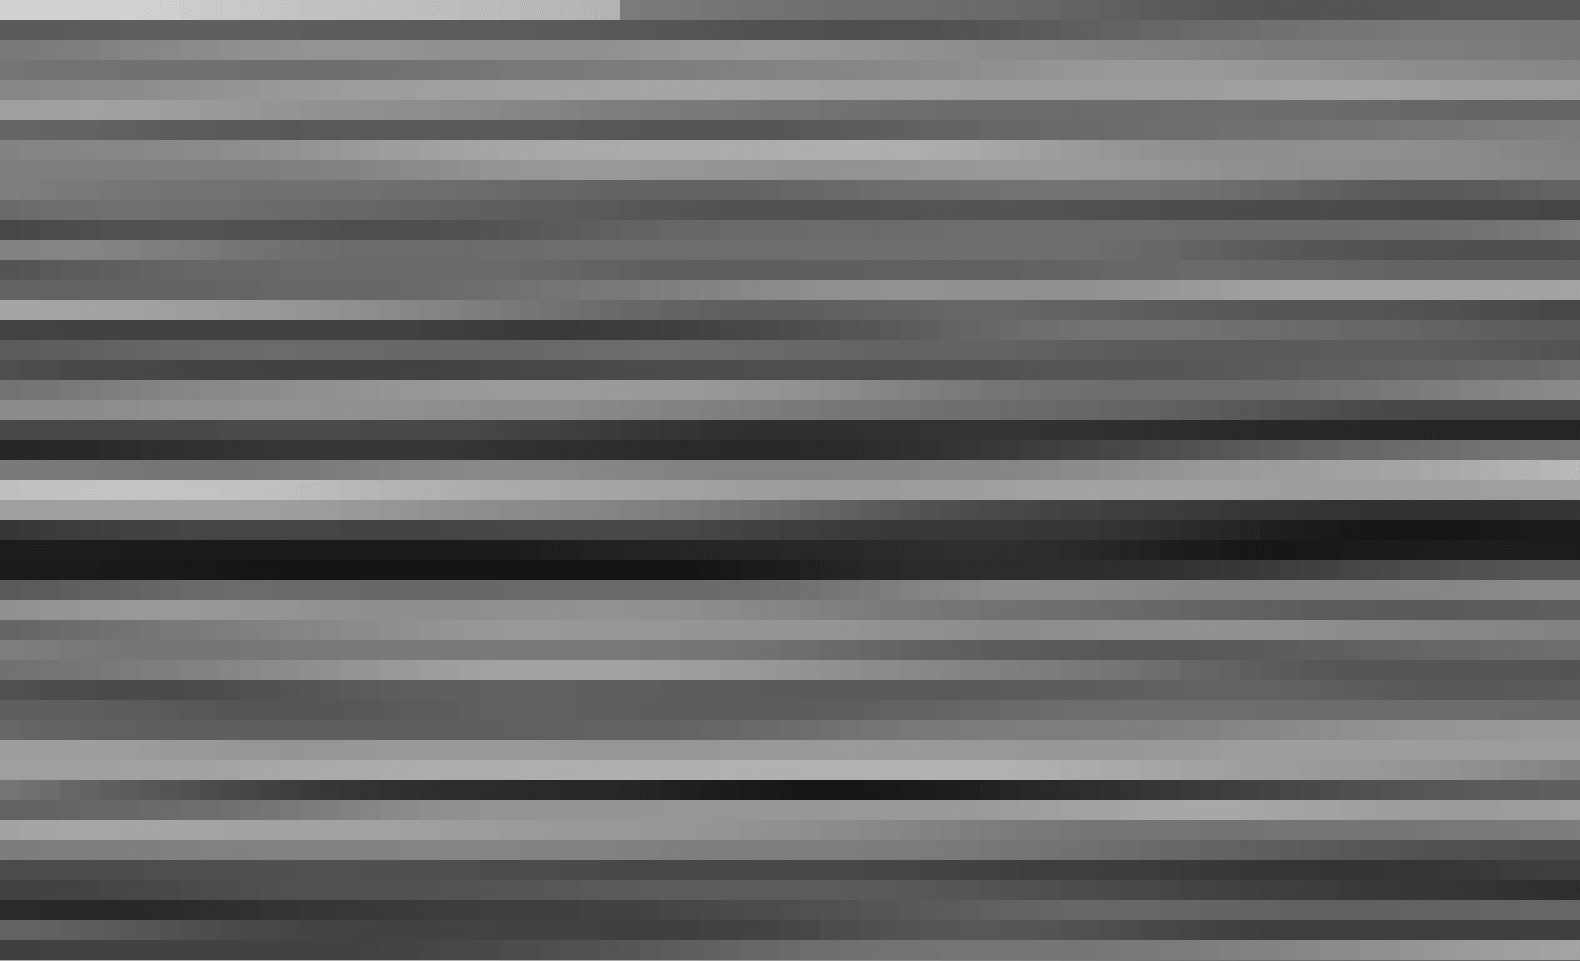 Perlin noise example with alpha